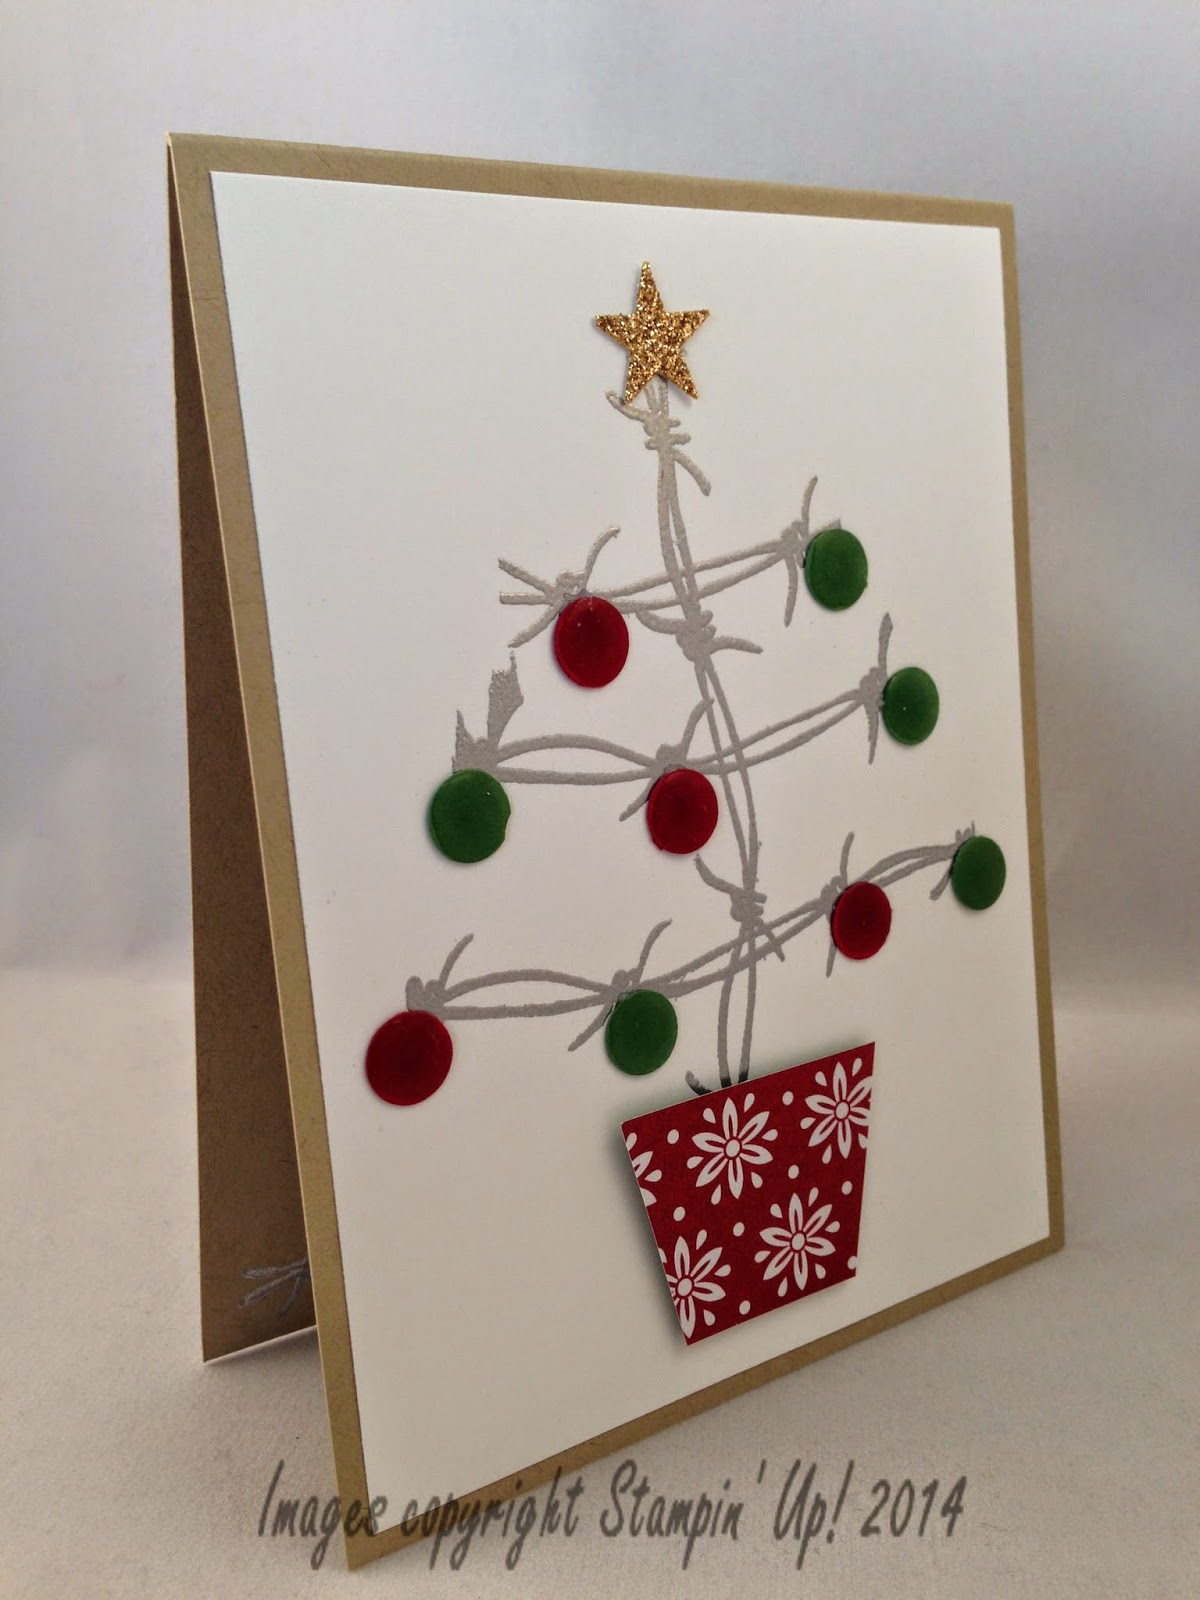 StampinTX: Swap Christmas Card Ideas